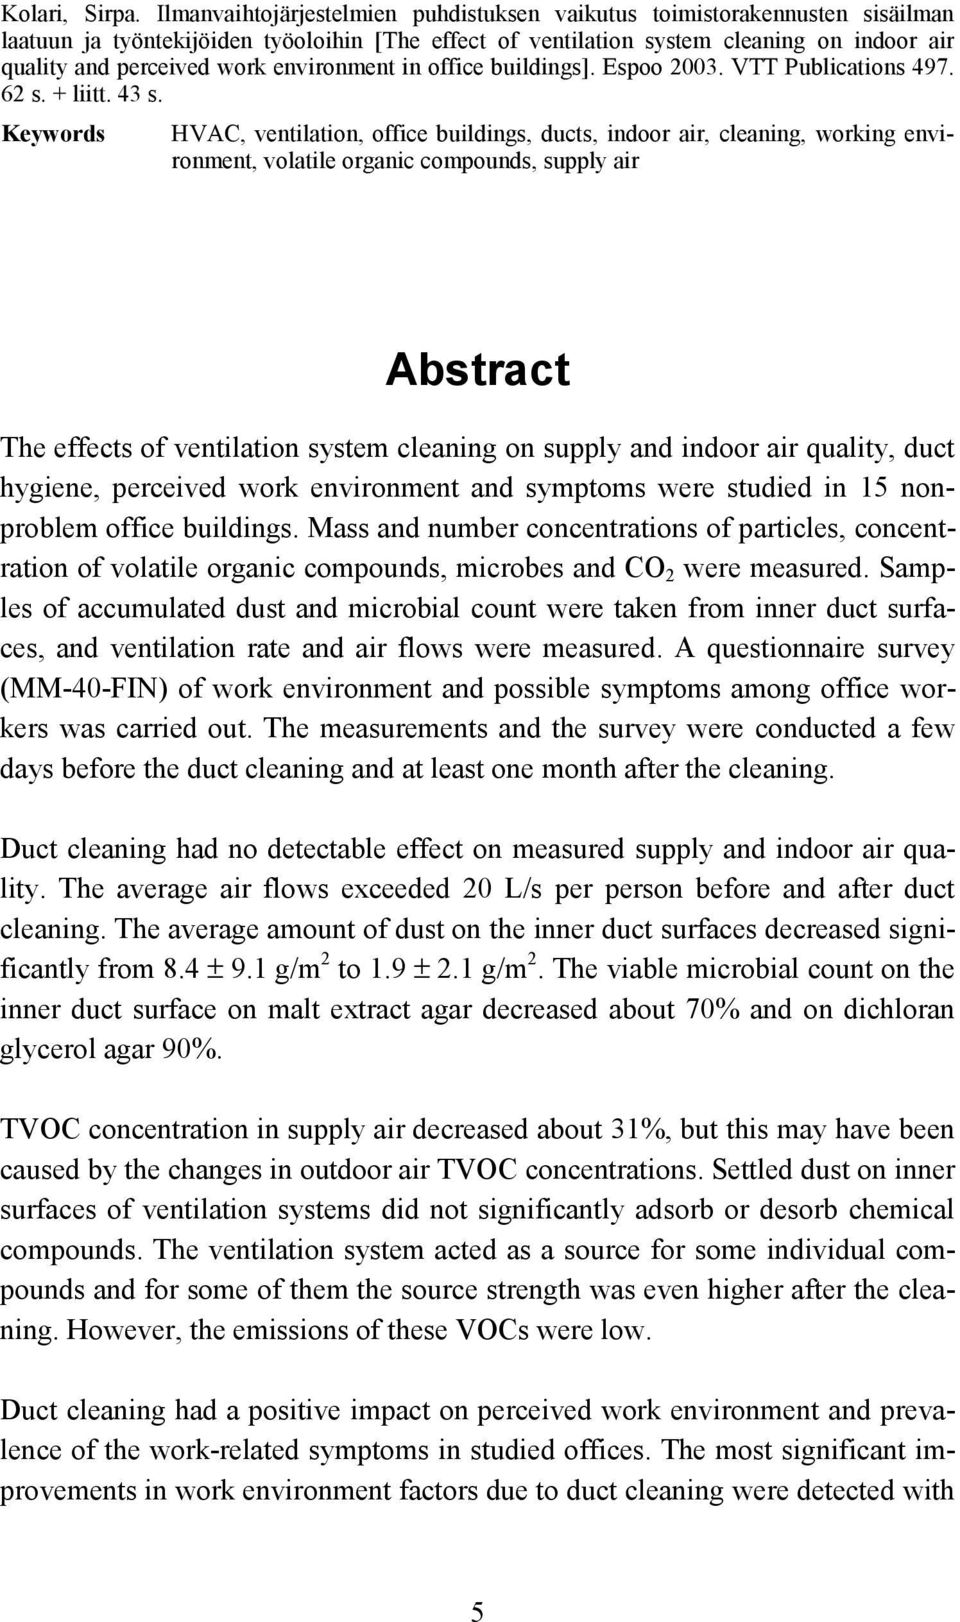 environment in office buildings]. Espoo 2003. VTT Publications 497. 62 s. + liitt. 43 s.